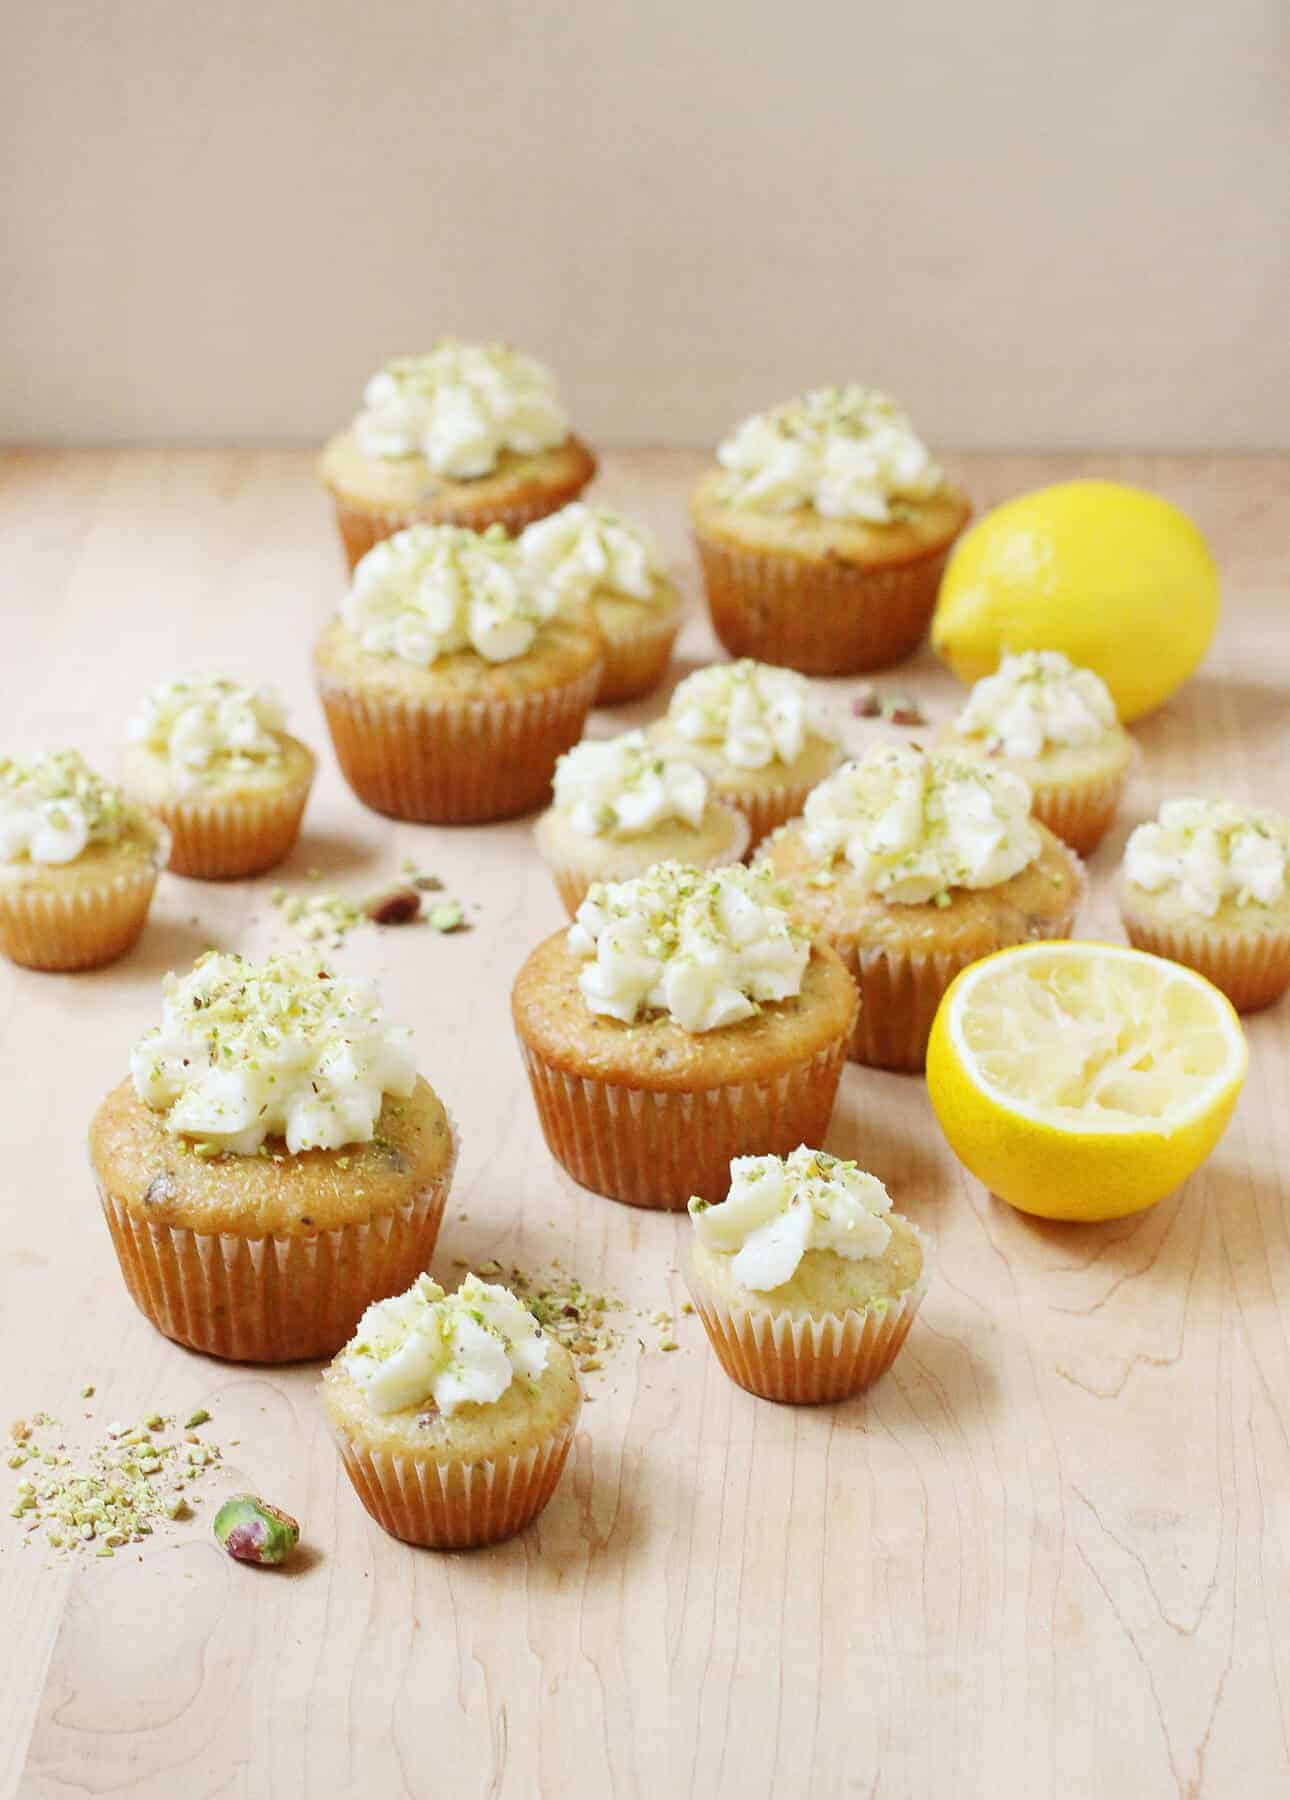 Lemon Pistachio Muffins, from Oh Sweet Day! A Celebration Cookbook